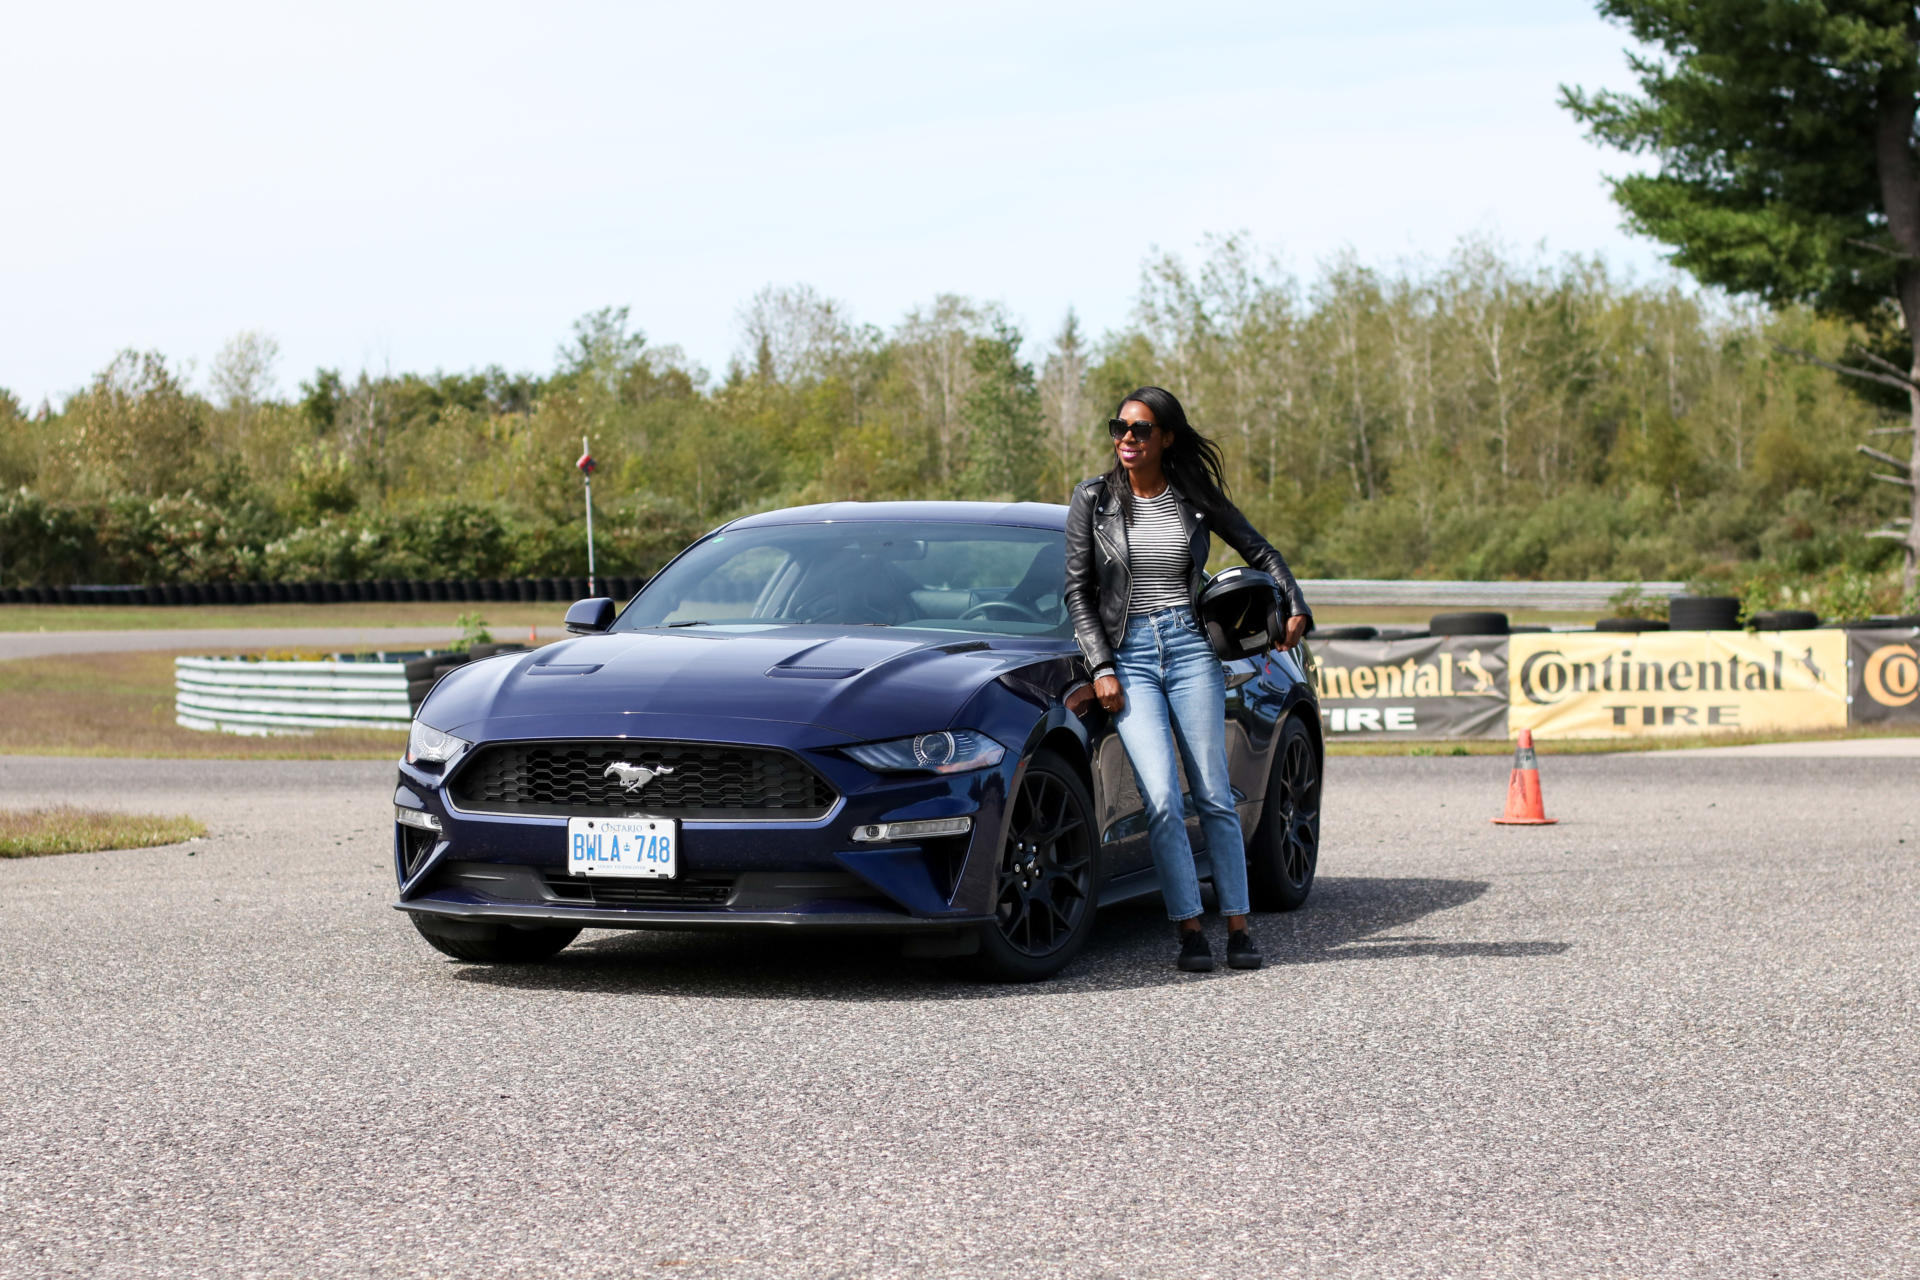 Driving This Car Was A Lifetime Experience - The 2018 Ford Mustang | Style Domination by Dominique Baker